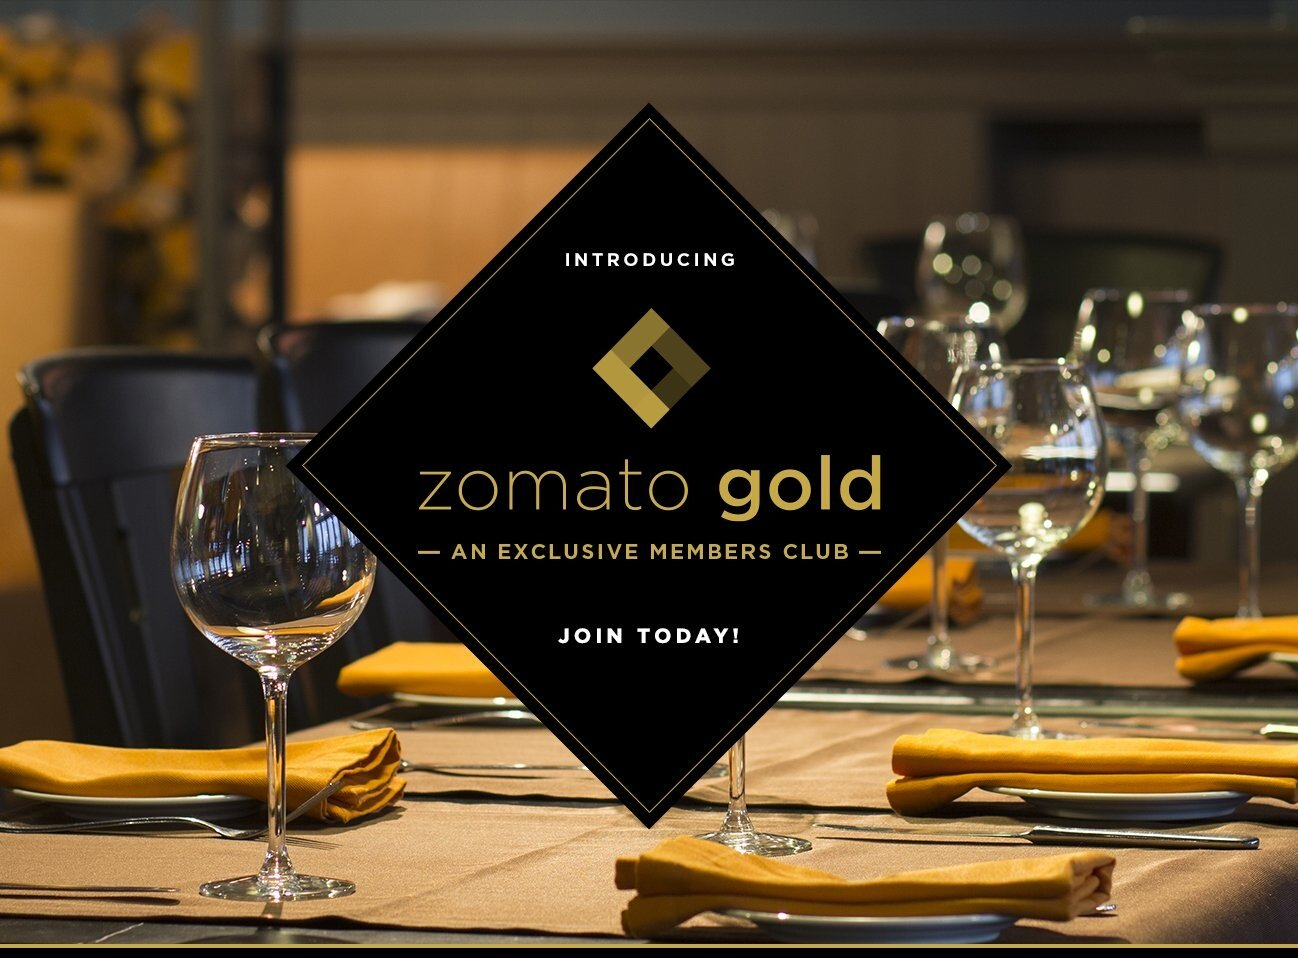 Zomato gold memberships sold like hot cakes on day of for The food bar zomato